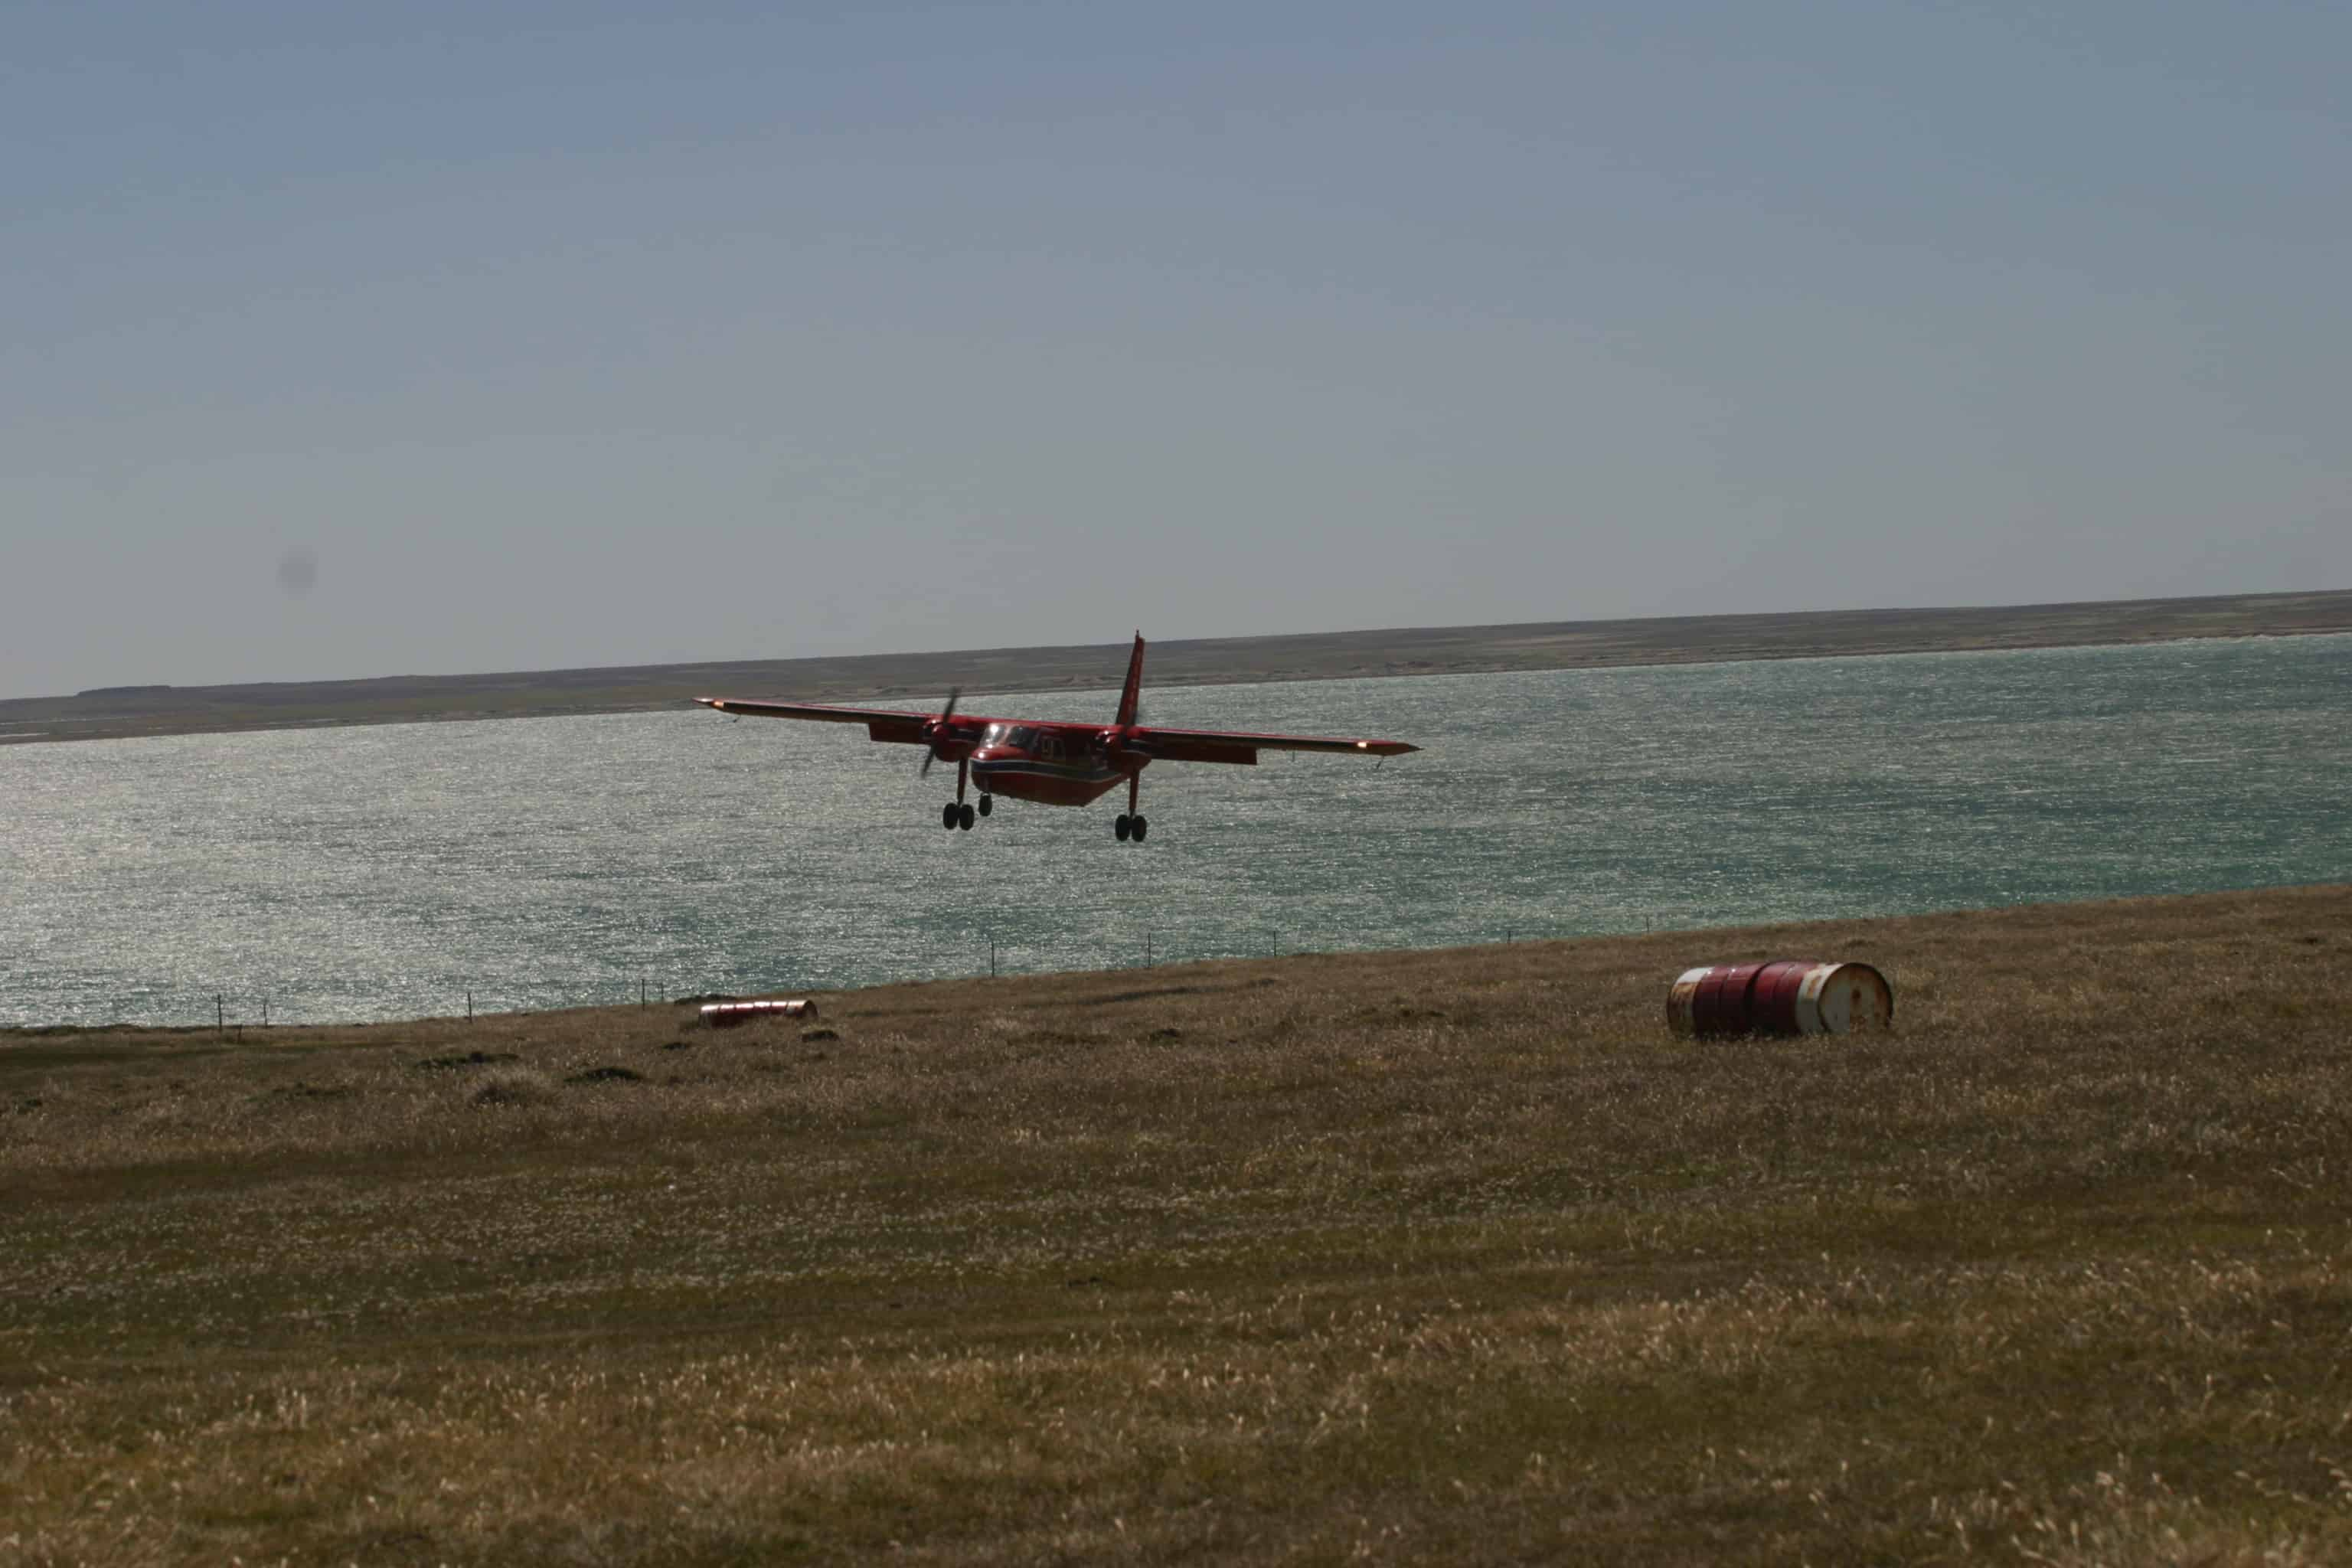 Britten-Norman Islander of Falkland Islands Government Air Service (FIGAS) lands at New Island. Copyright: Dr Mike Pienkowski